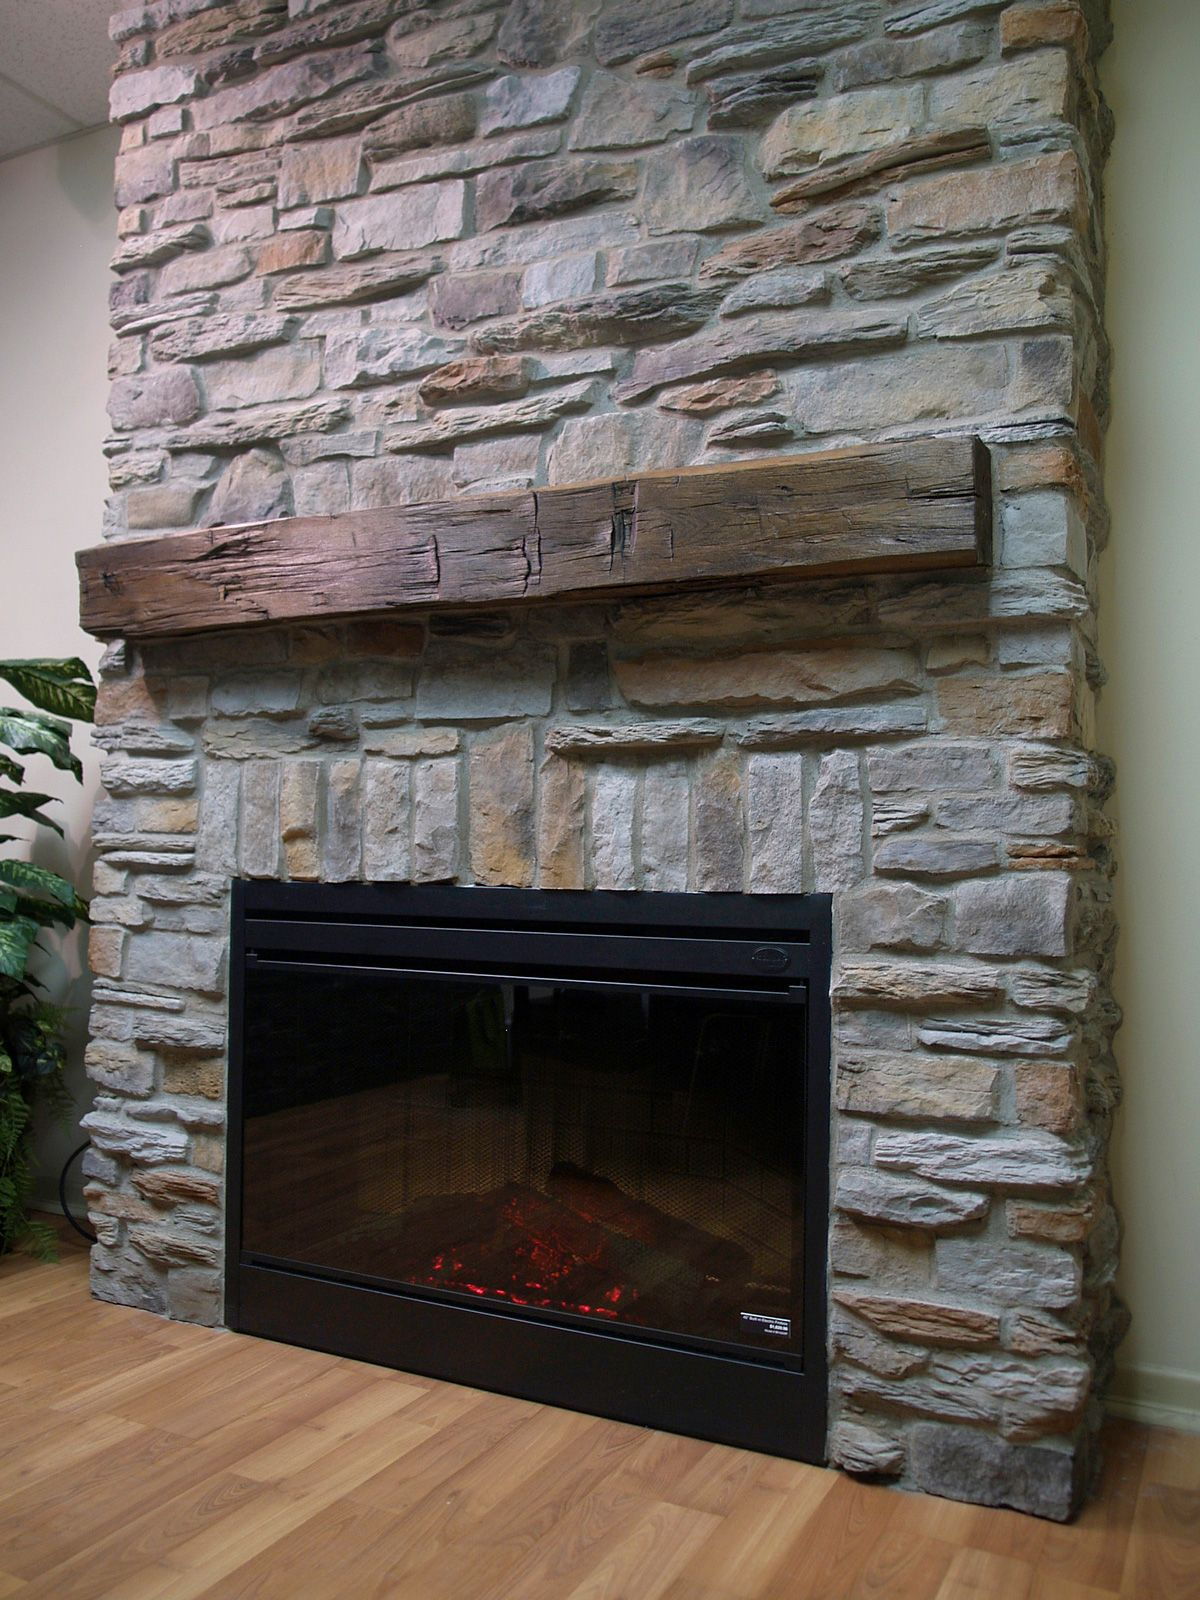 Interior Styles Of River Stone Fireplace Ideas Indoor Outdoor